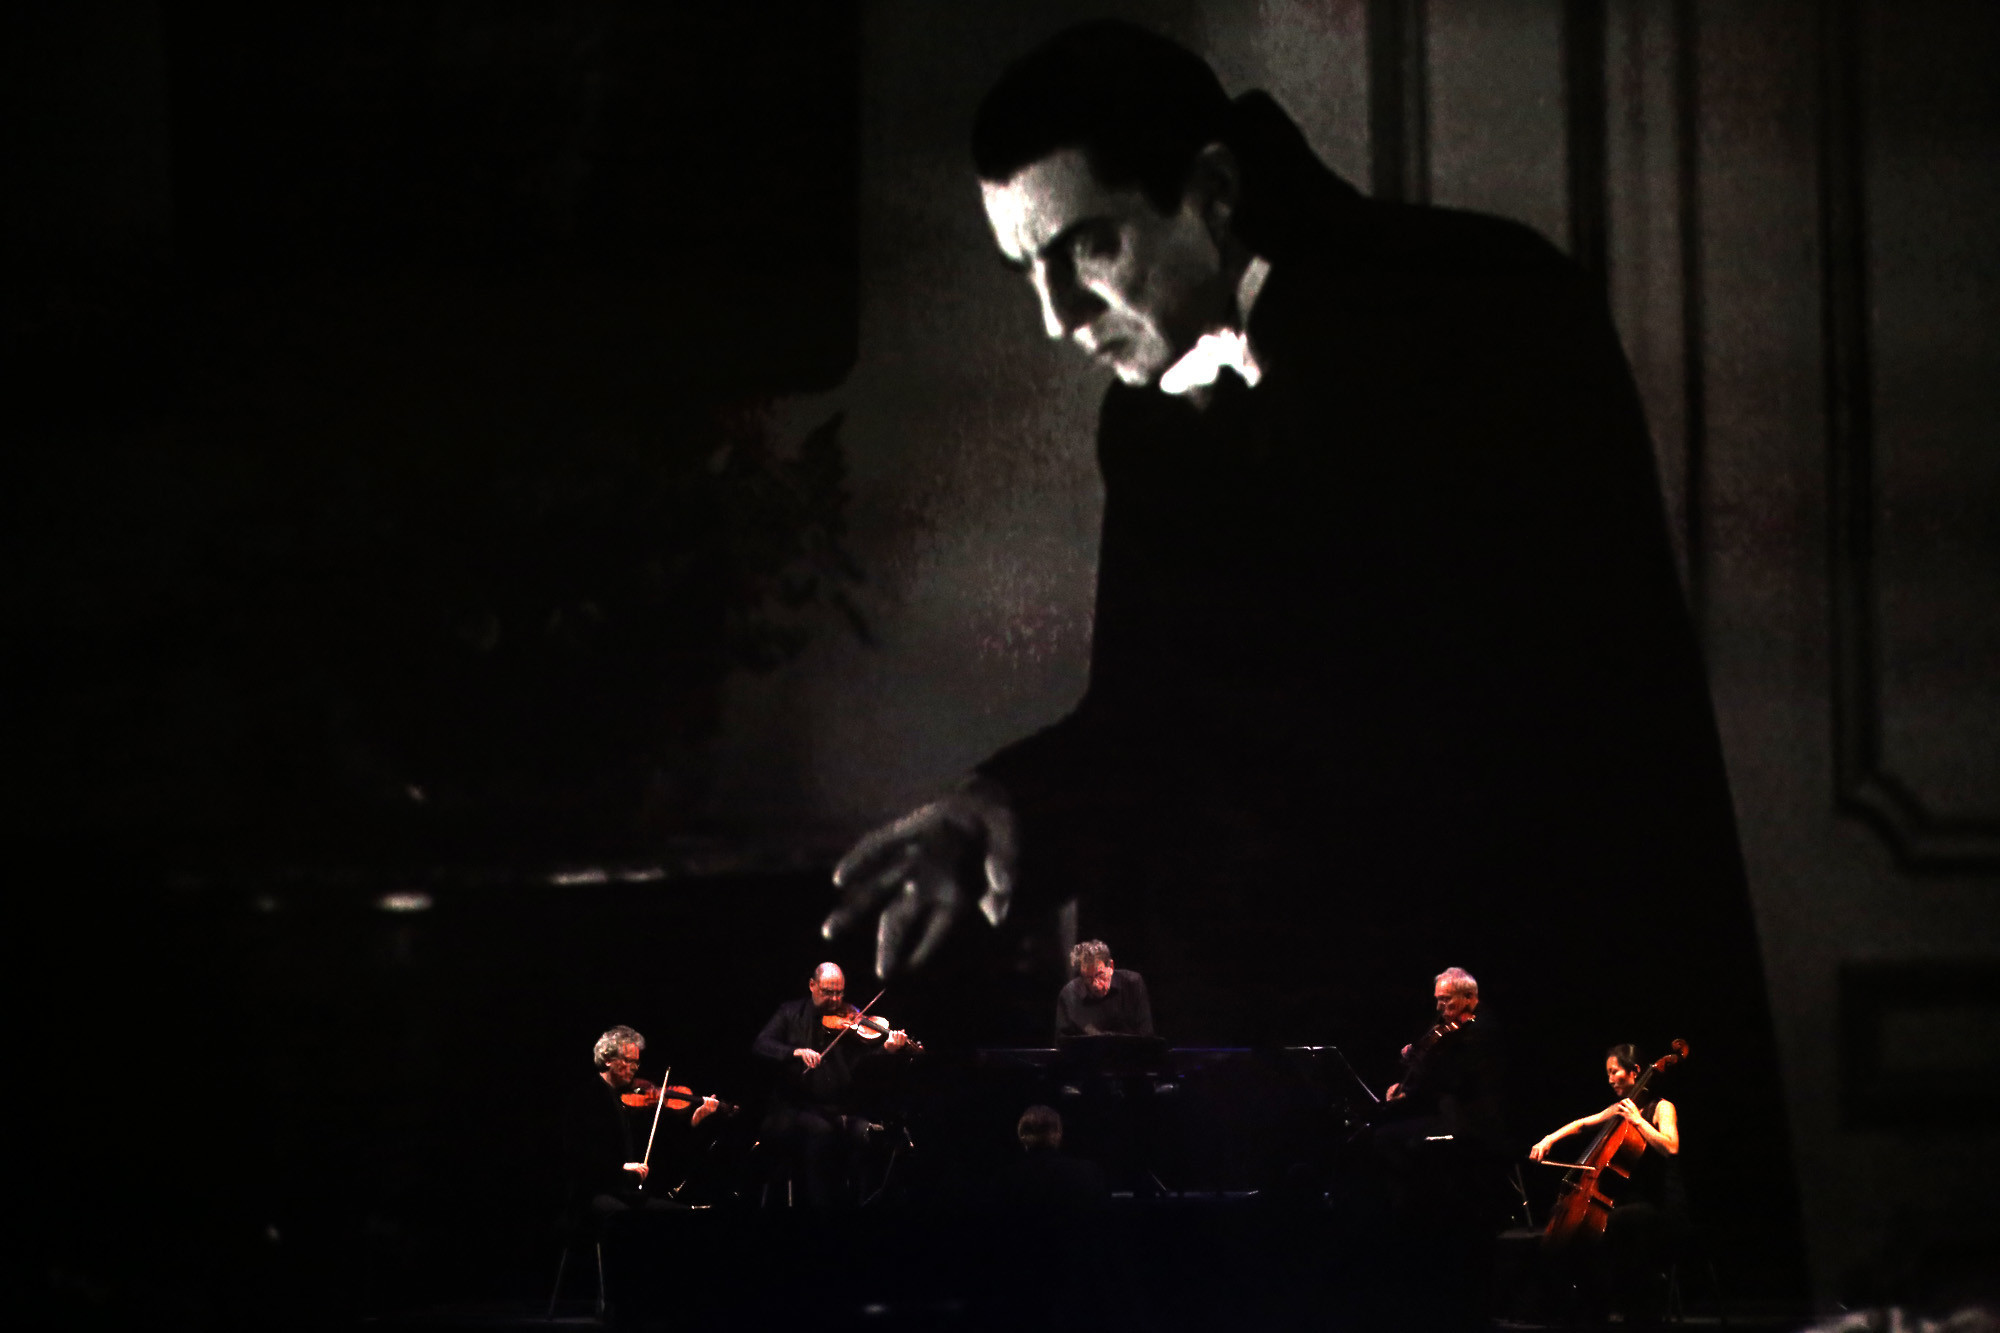 Glass and the Kronos Quartet perform behind a scrim as Bela Lugosi fills the screen at the Ace.